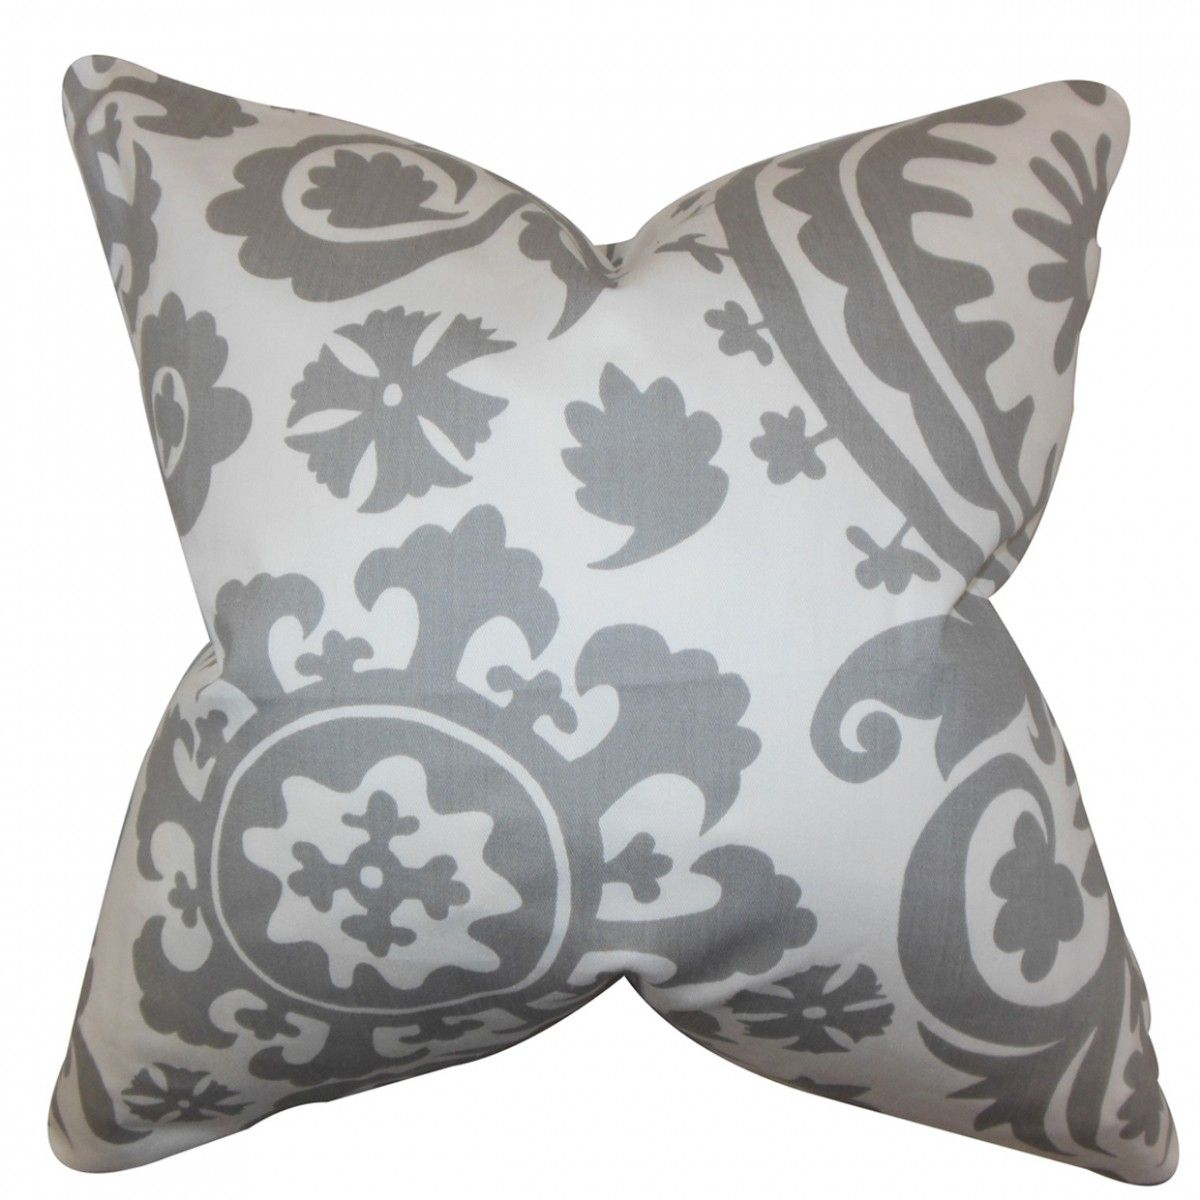 Wella floral pillow twill accent pieces pillows and living spaces